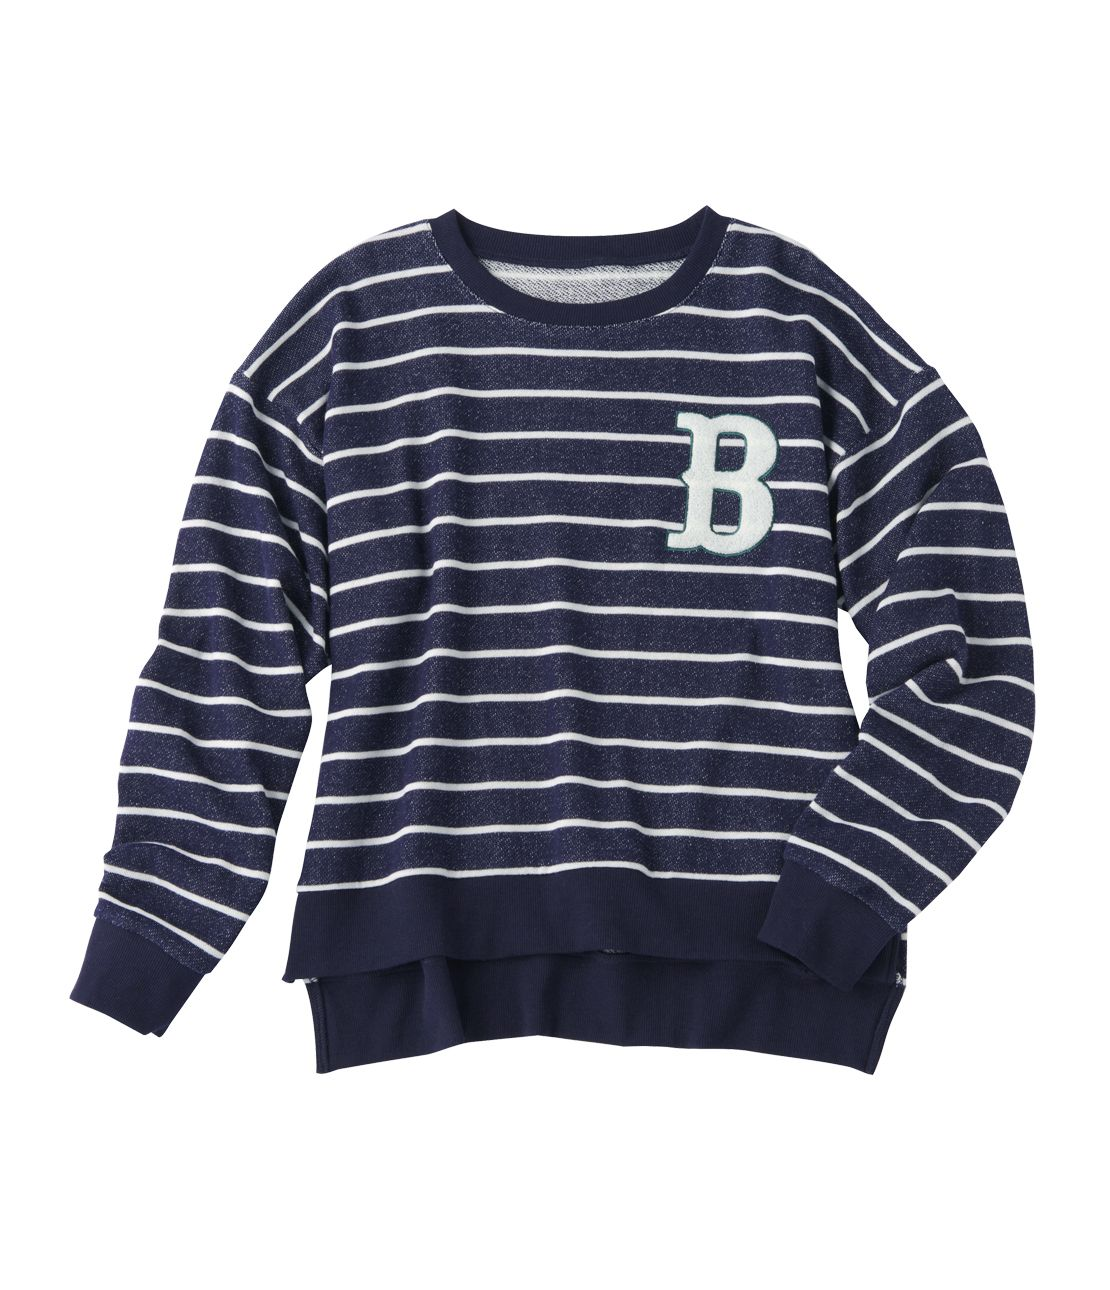 MHB border sweat top